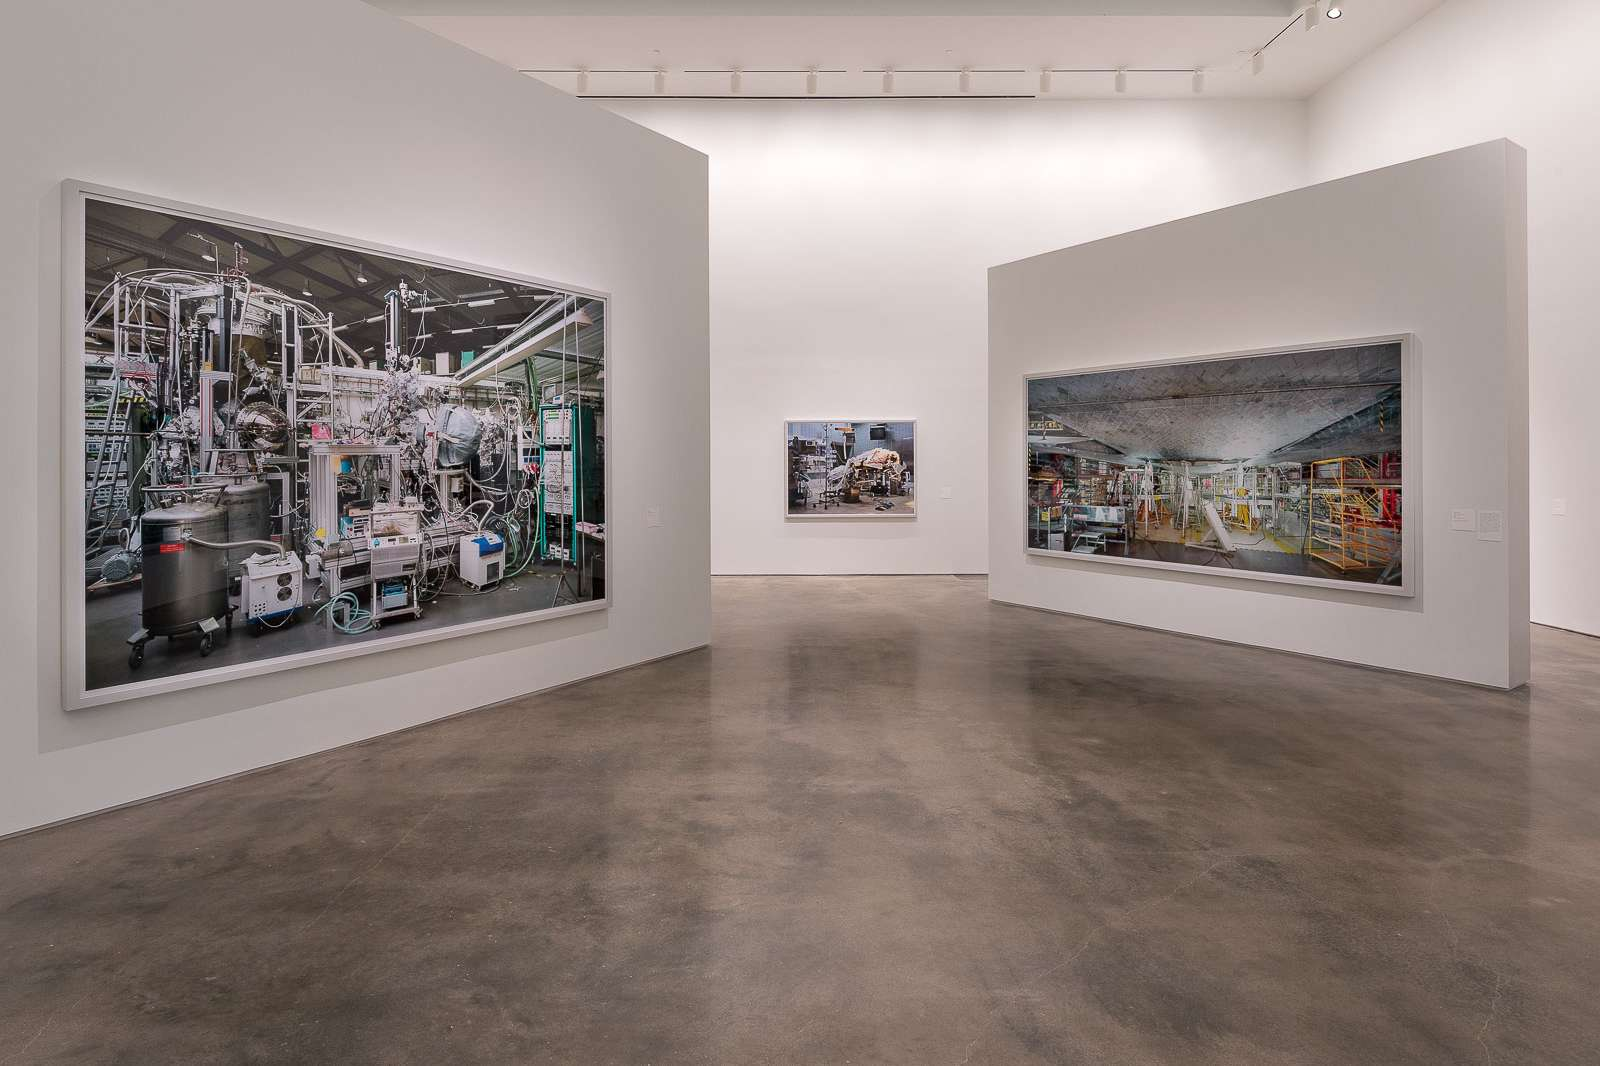 Installation view of Thomas Struth: Nature & Politics at the Moody Center for the Arts. ©Thomas Struth. Photo: Nash Baker